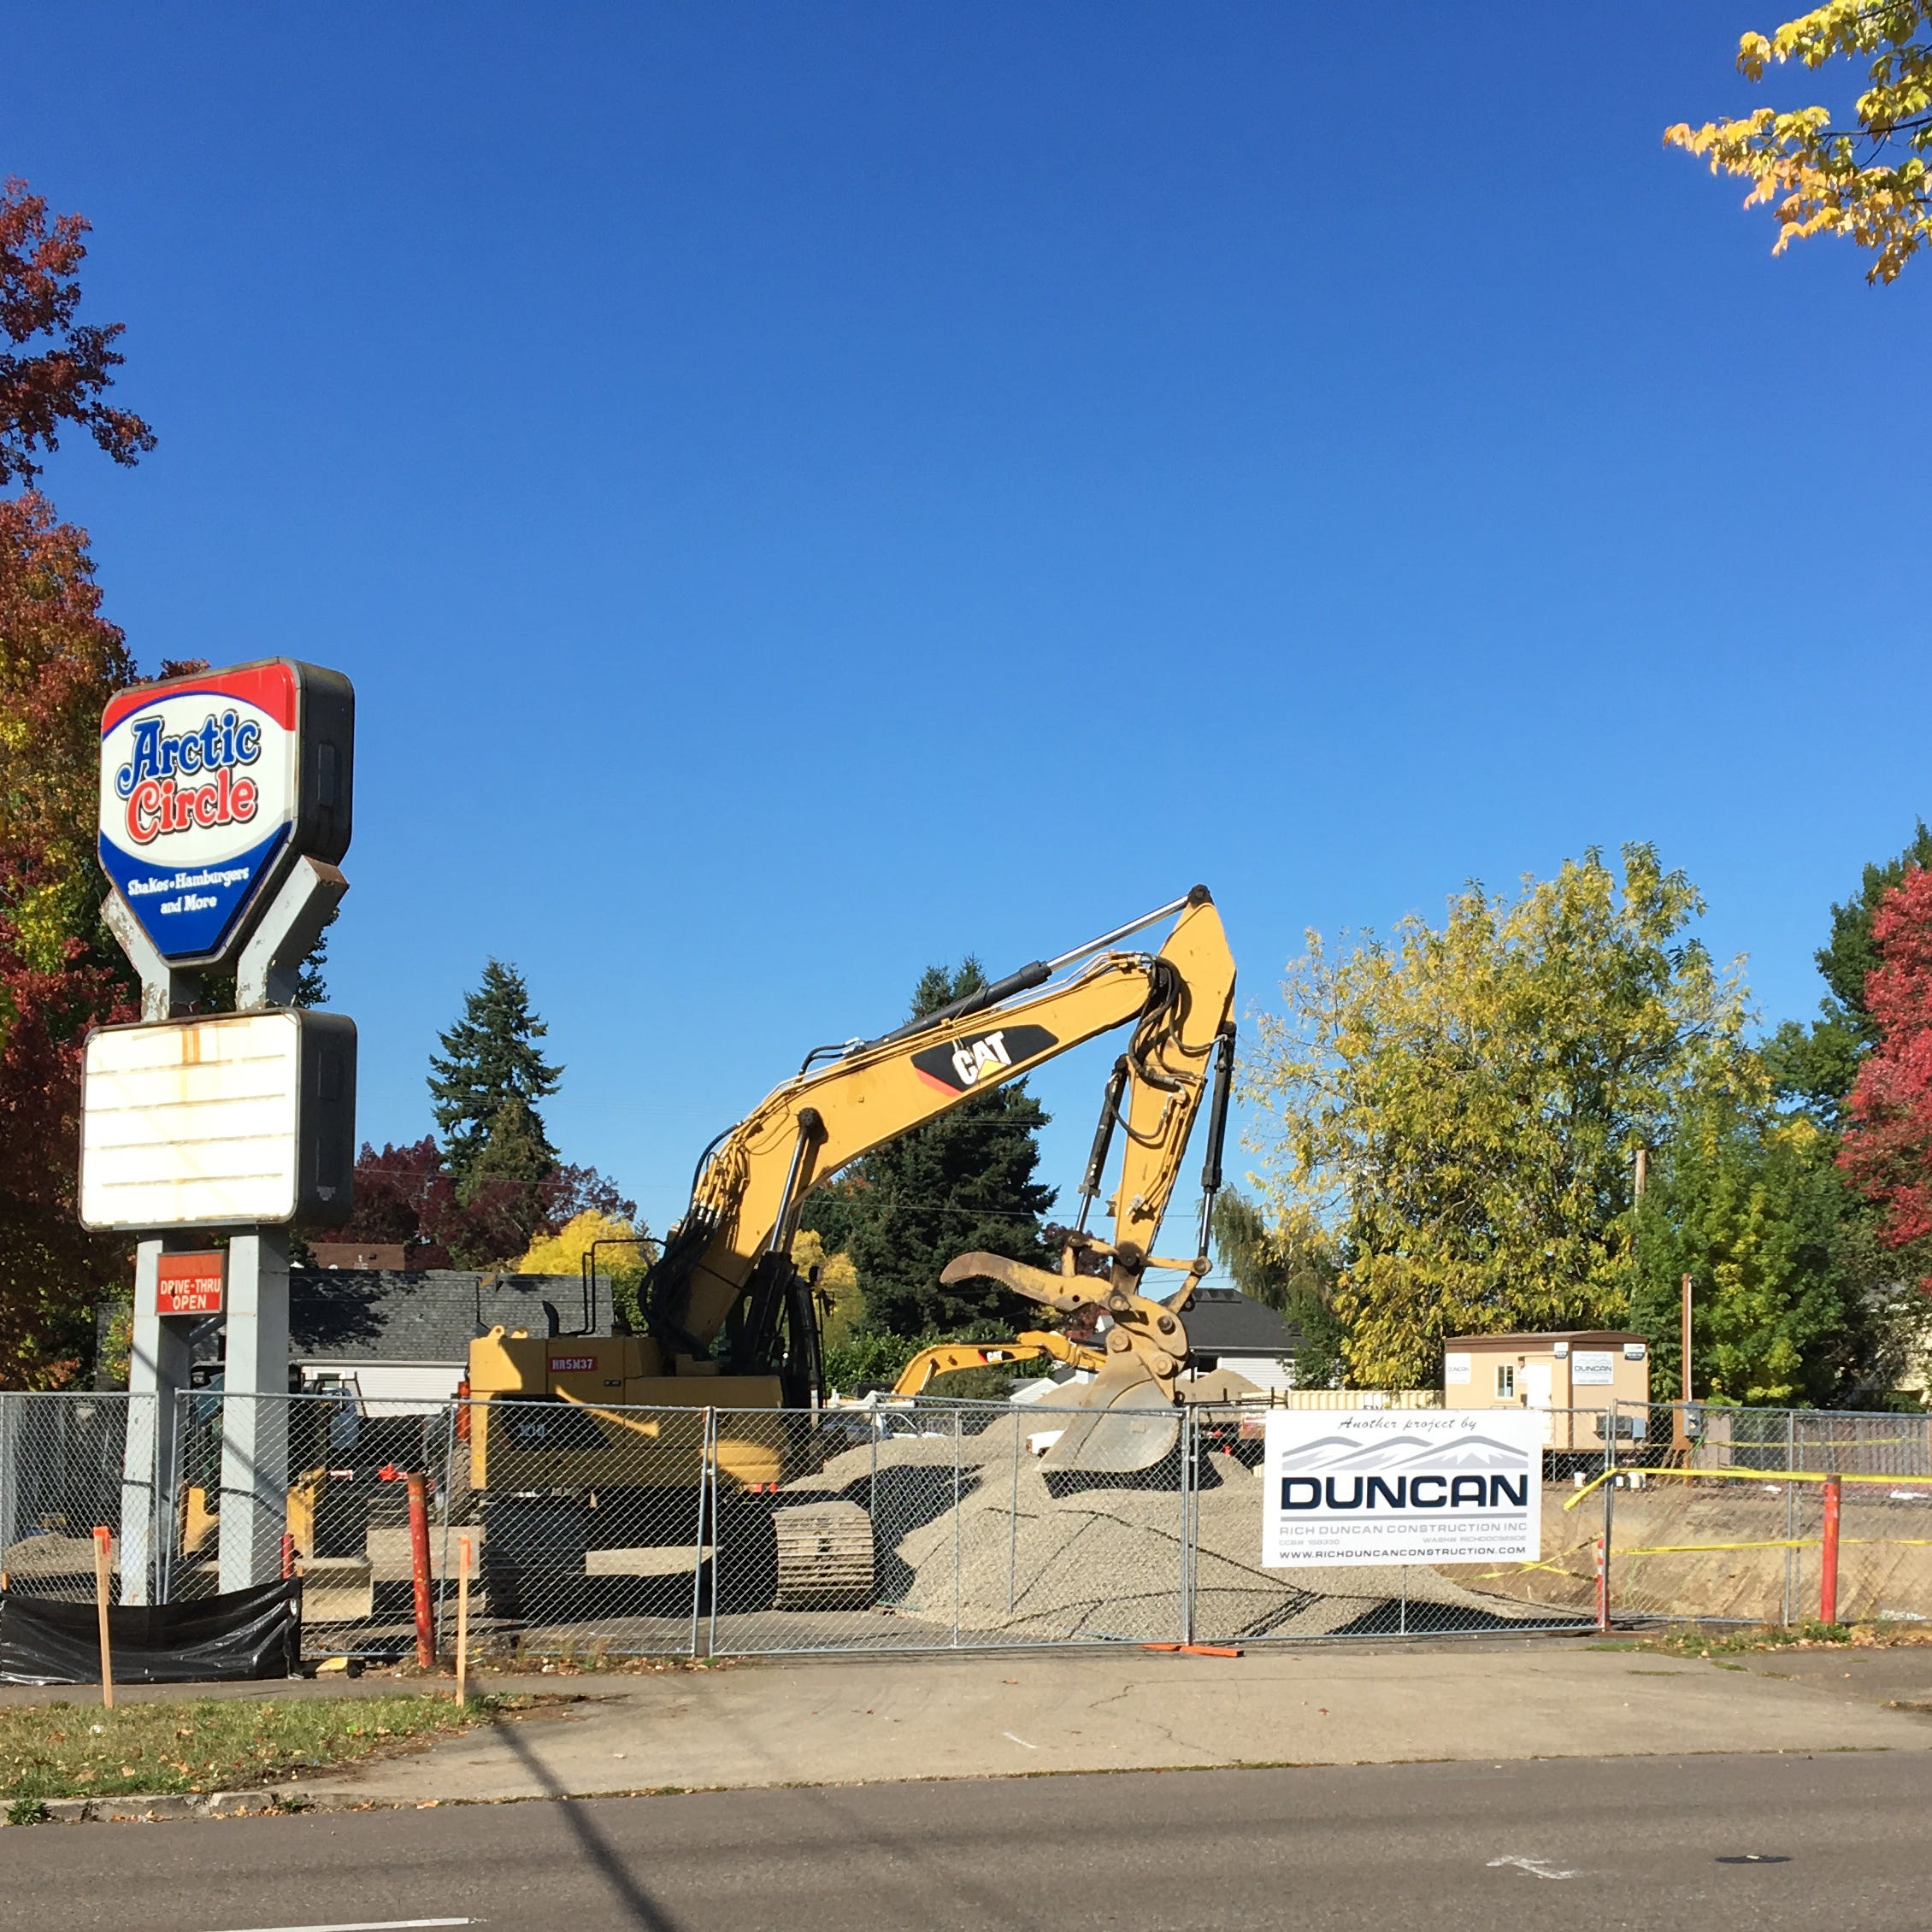 What's going on at the old Bob's Hamburgers and Arctic Circle on Capitol St.?